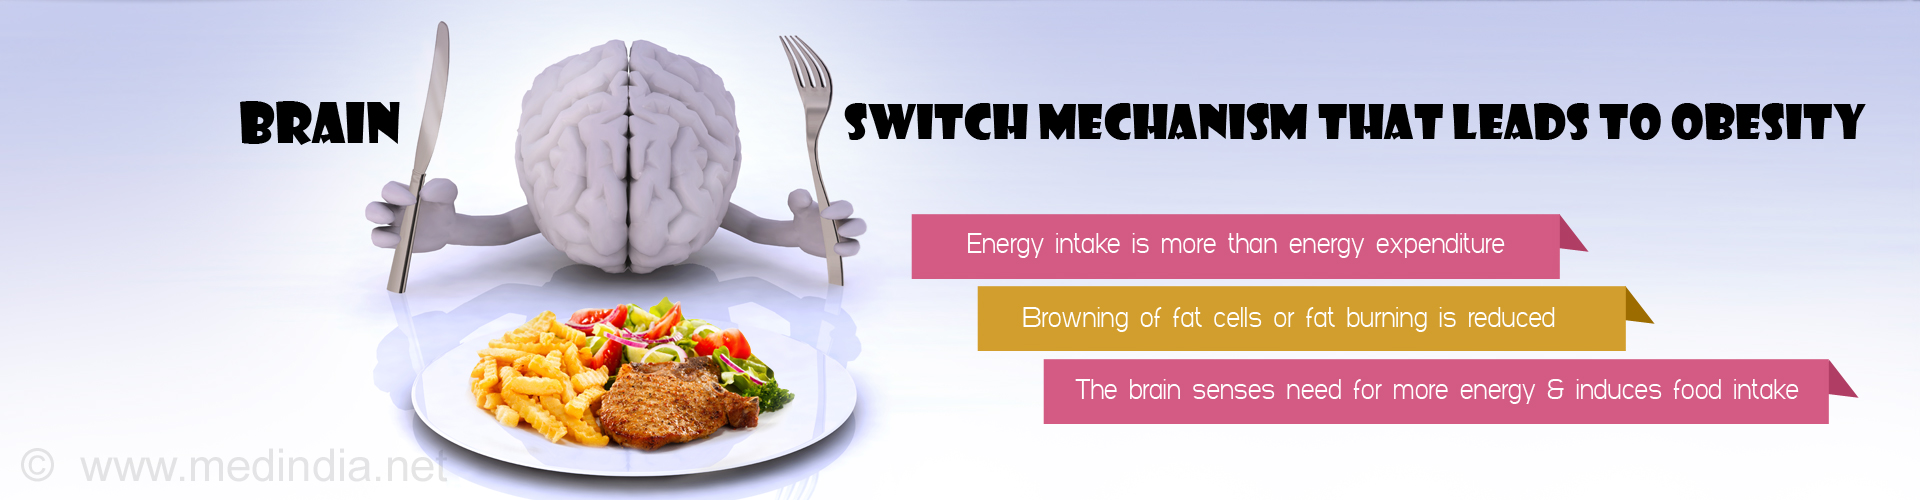 brain switch mechanism that leads to obesity